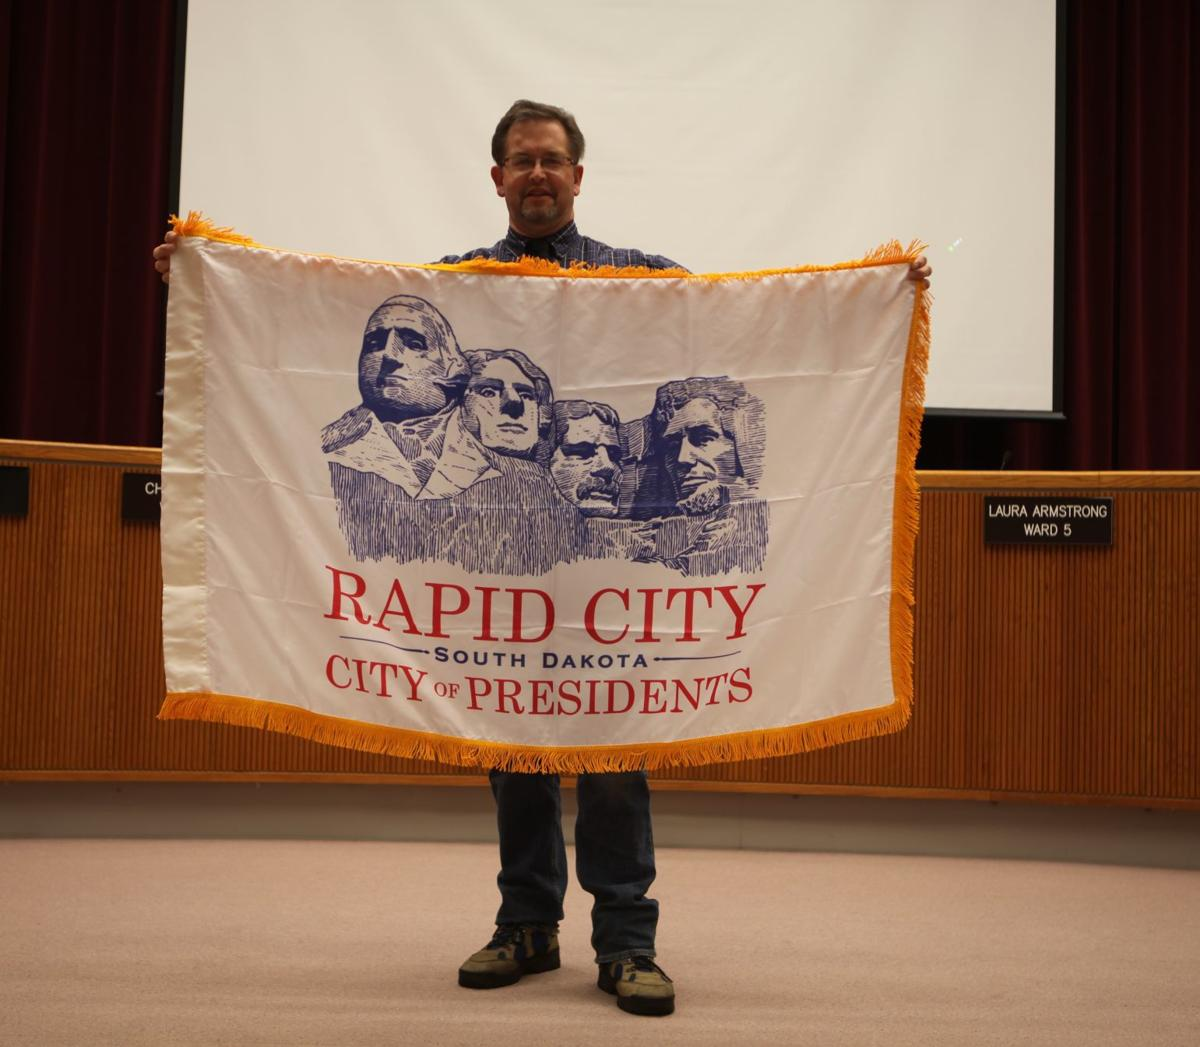 Unofficial Rapid City redesigned flag